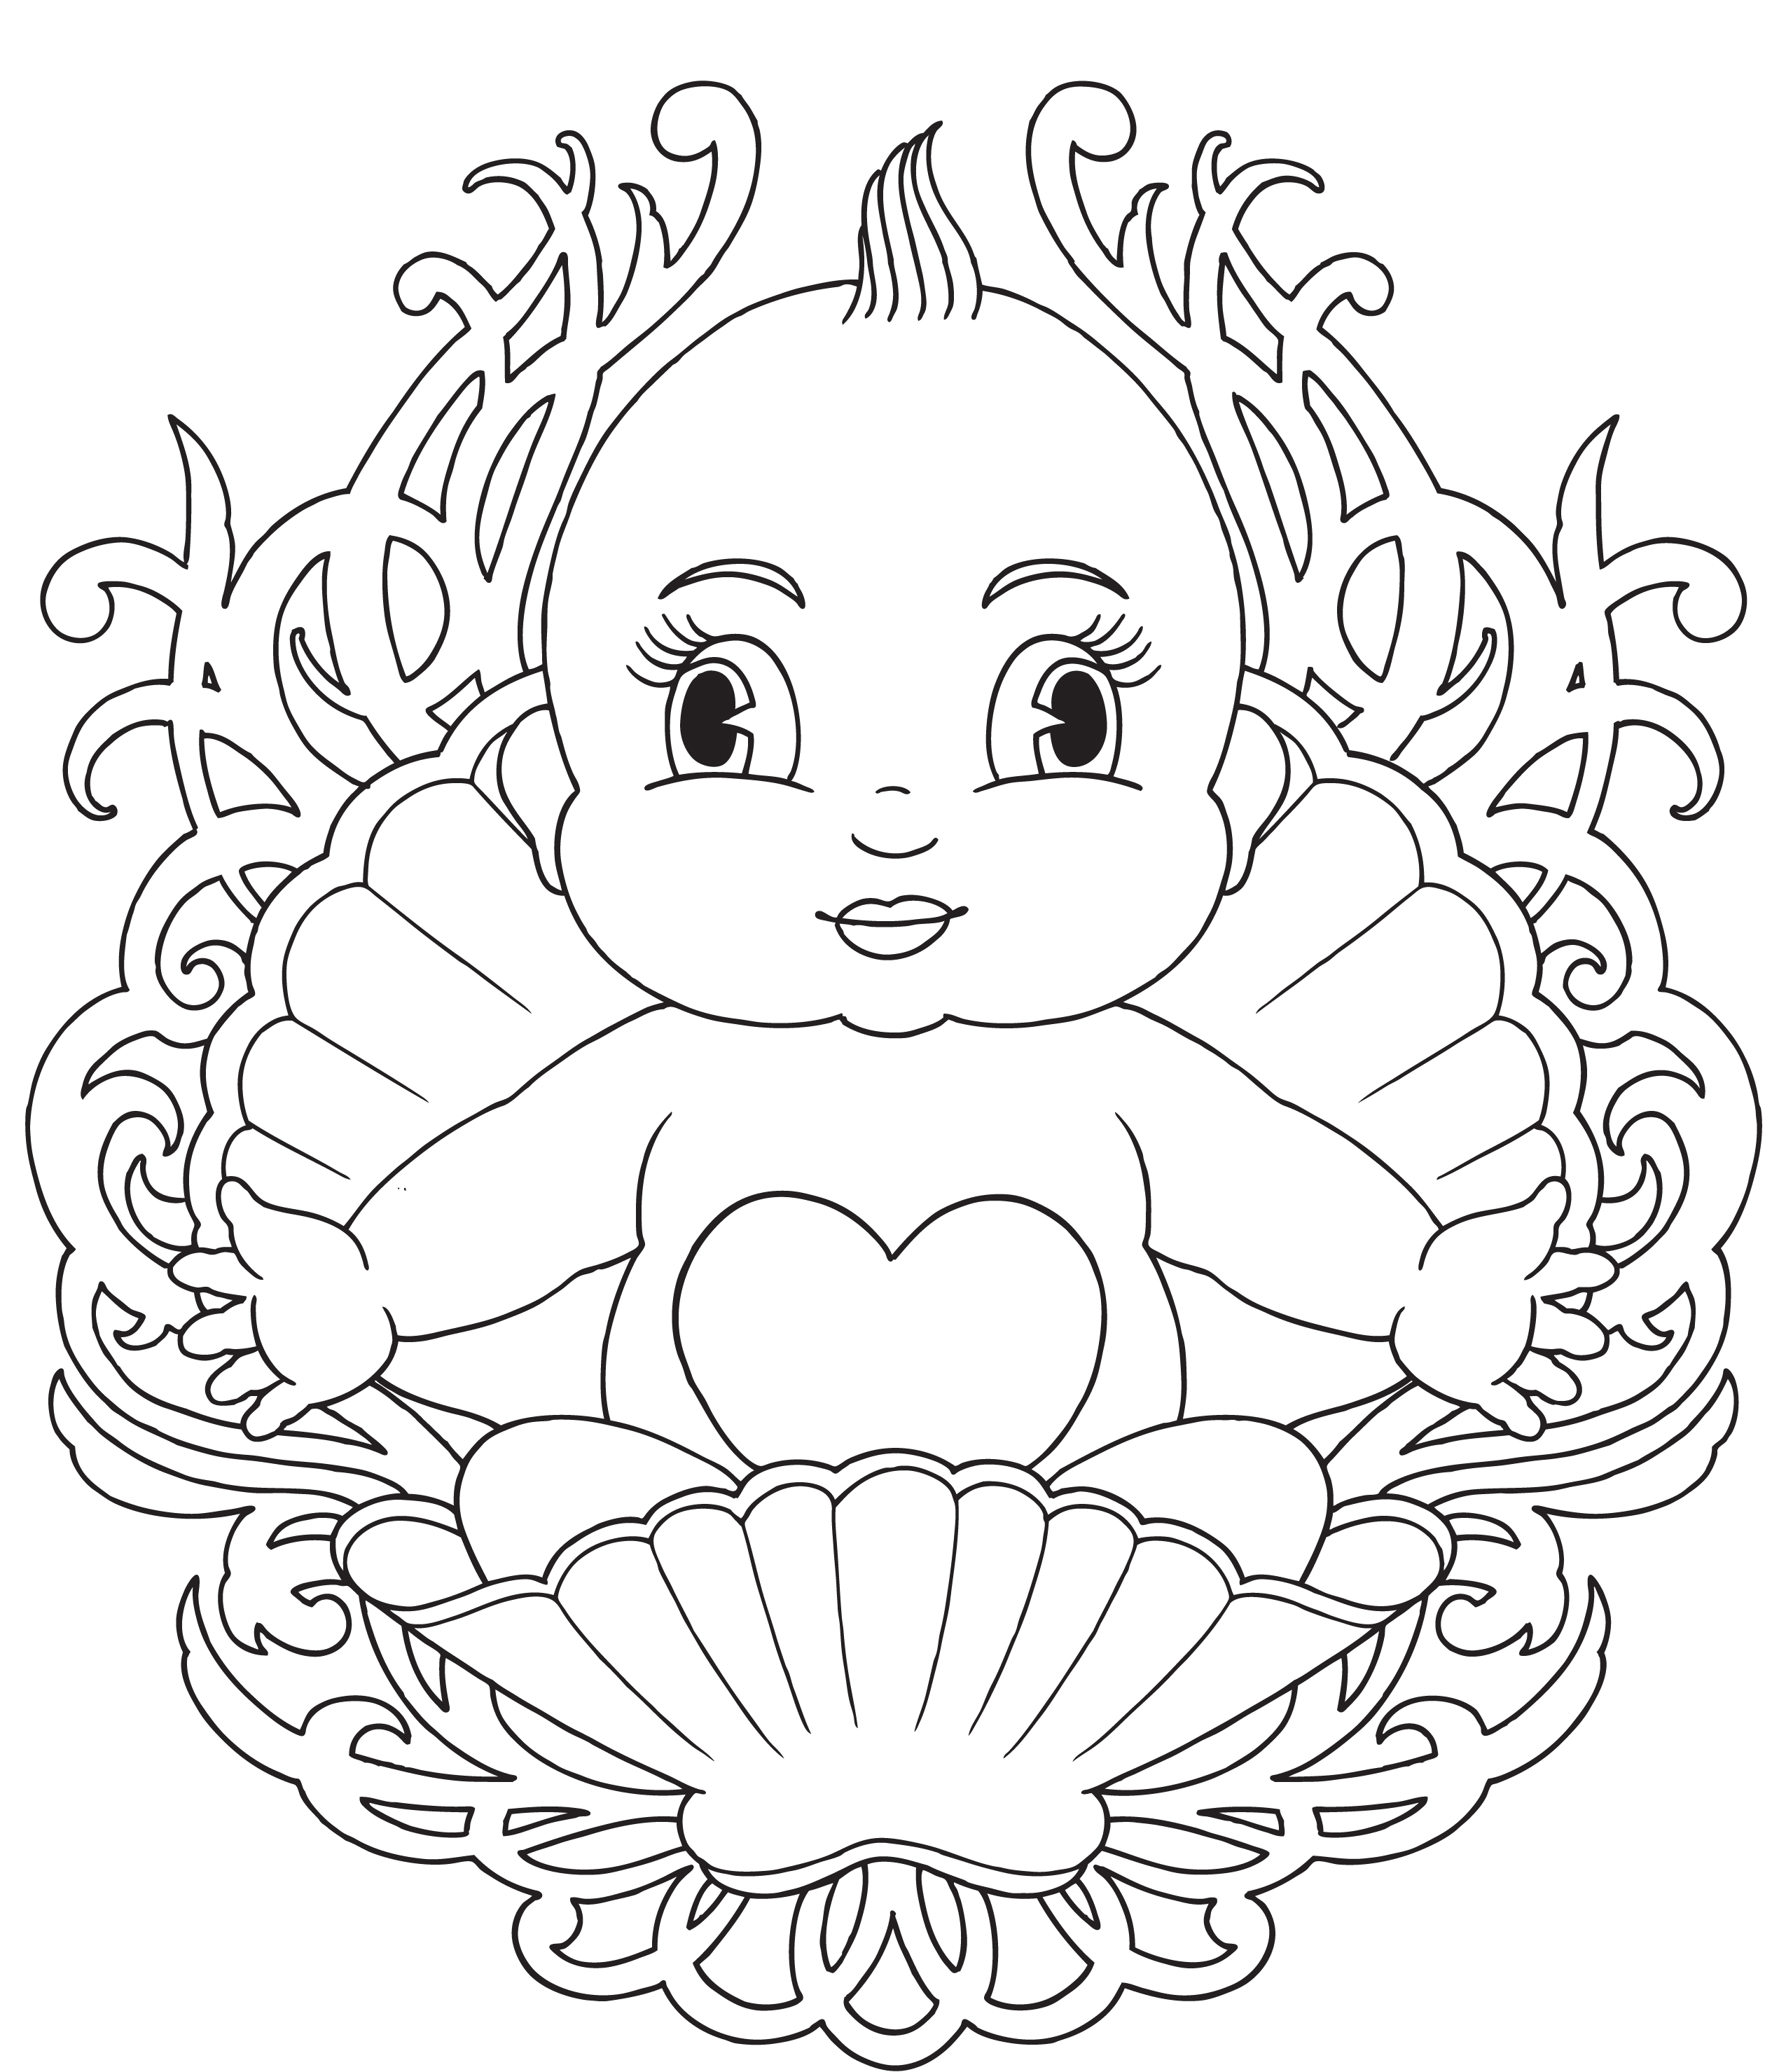 Baby Coloring Pages - Free Printable Baby Coloring Pages for Kids